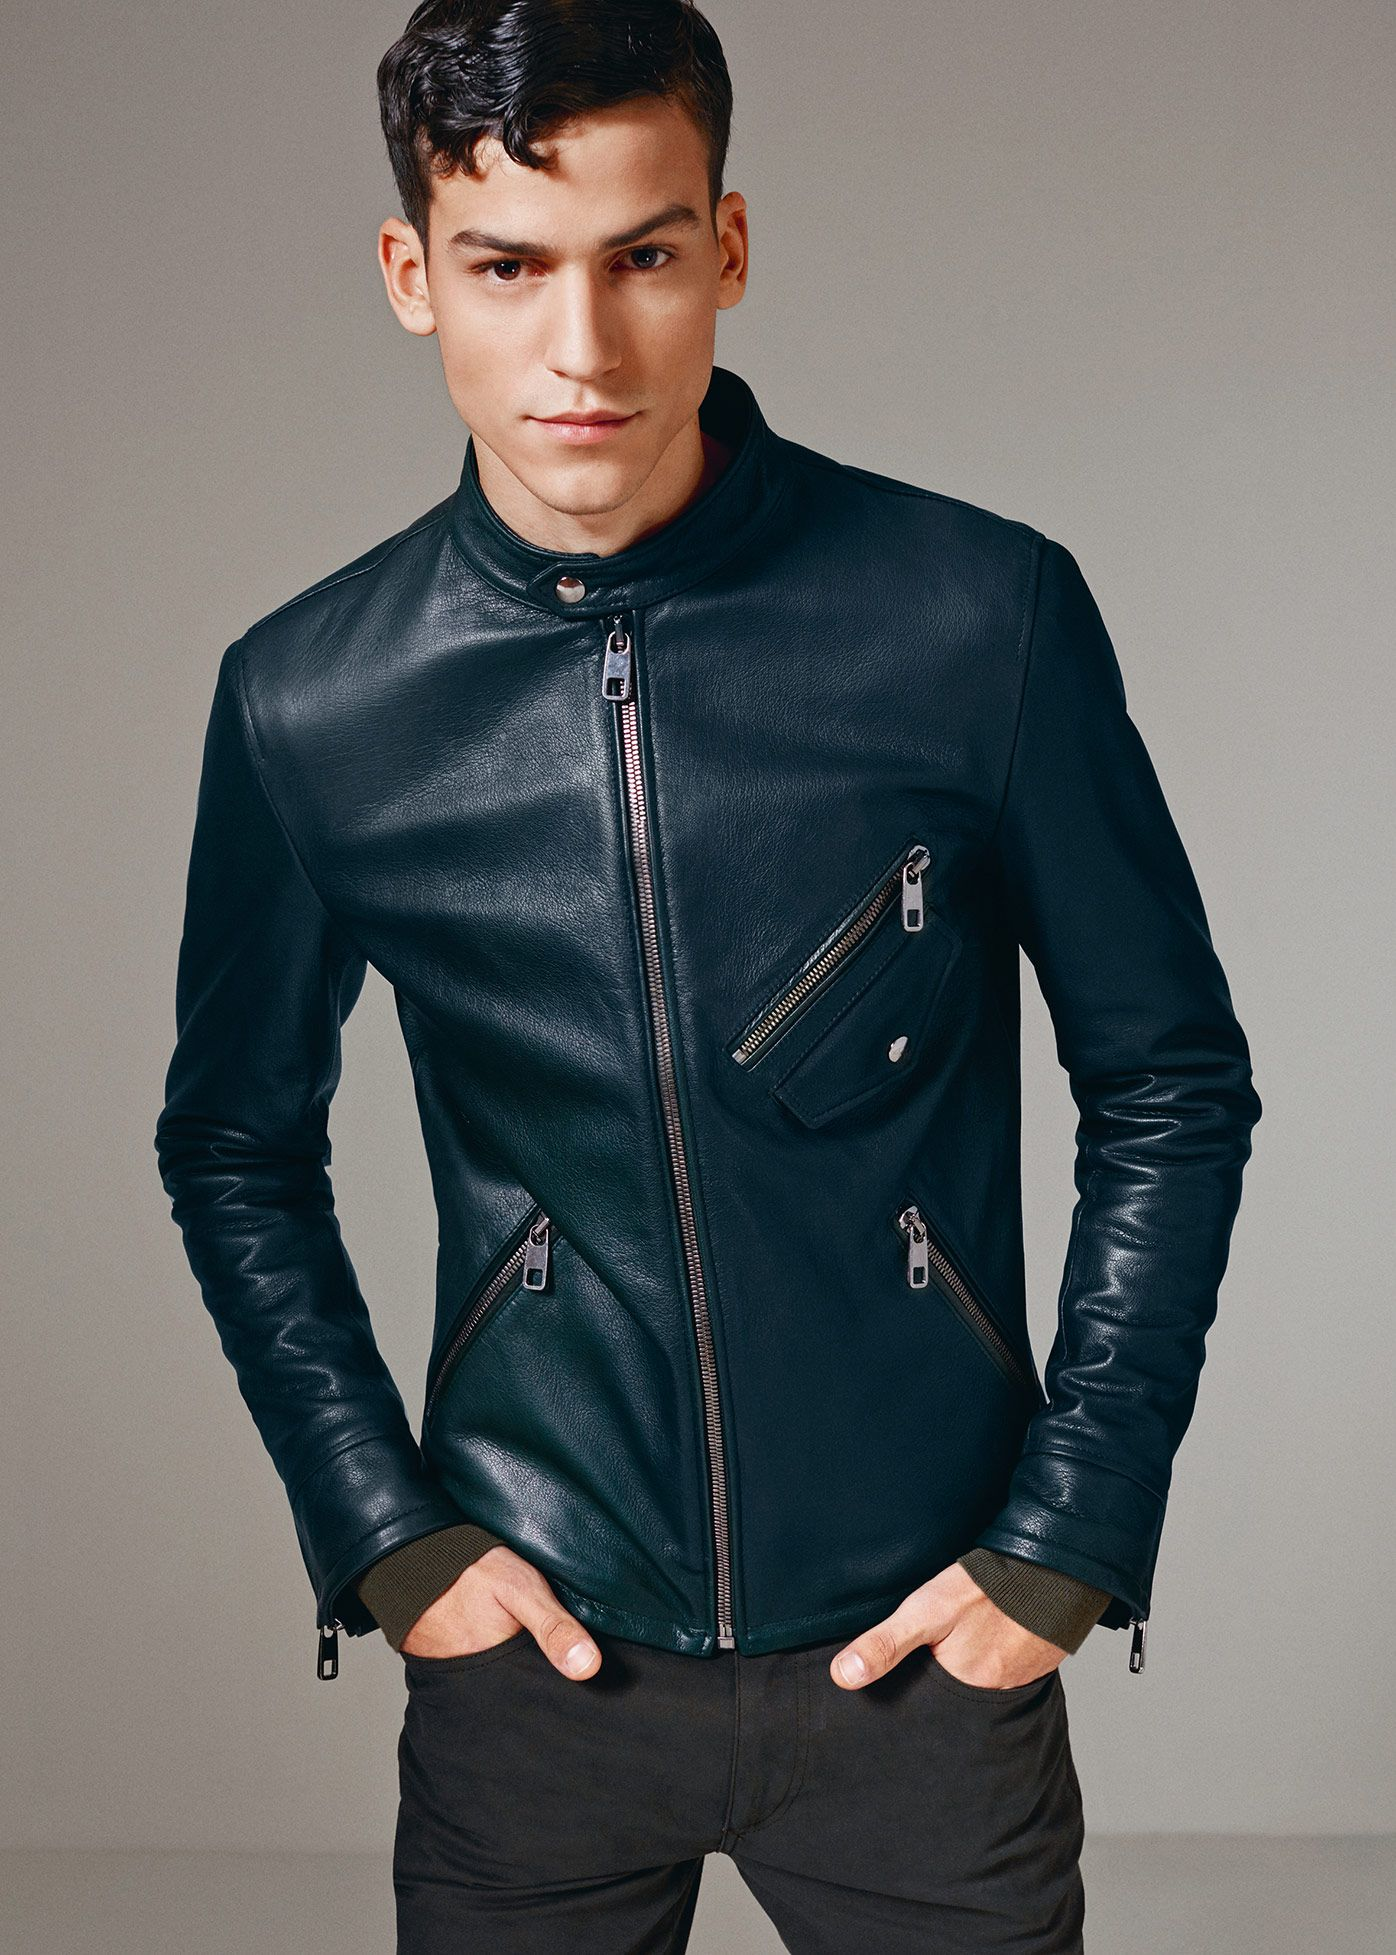 Men's Leather Jackets for Winter 2018 1